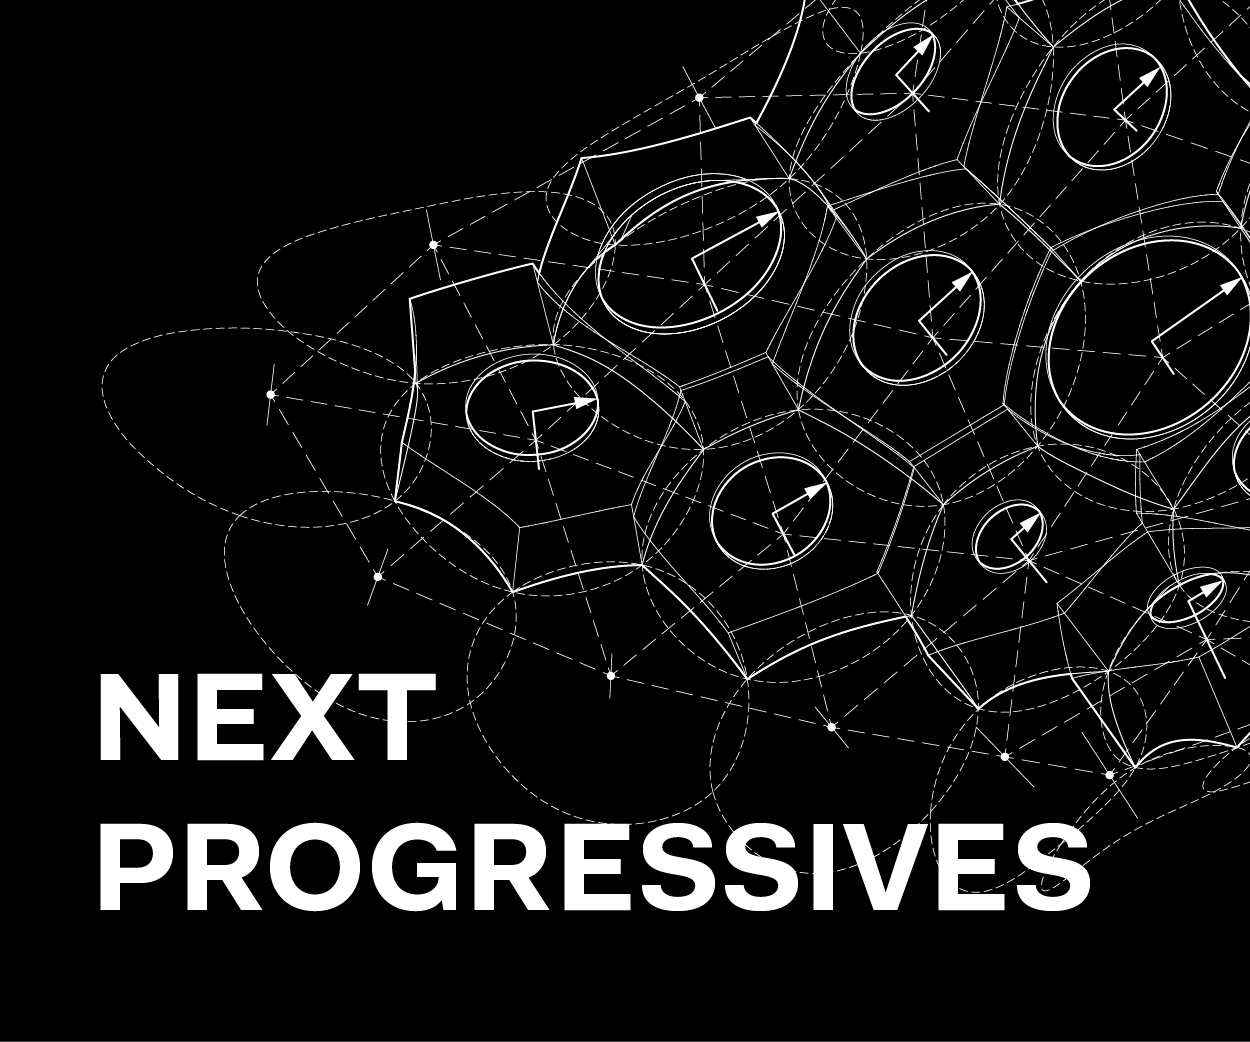 Next Progressives promo